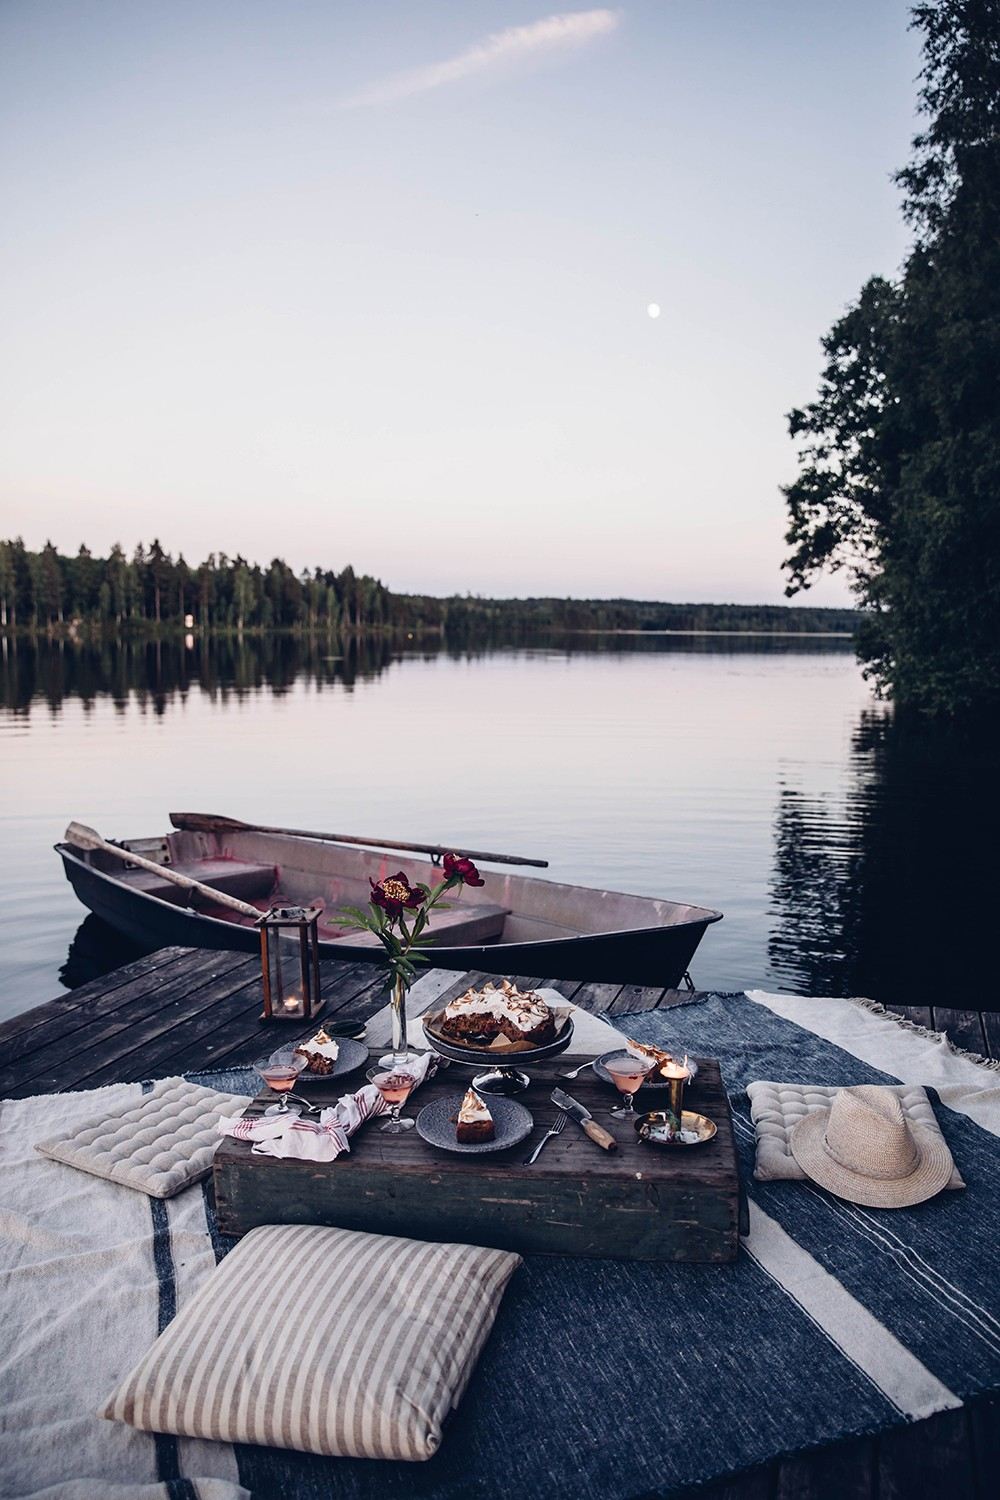 Moon Picnic in Sweden at the Lake – And a delicious Rhubarb-Lingonberry-Cake with Meringue